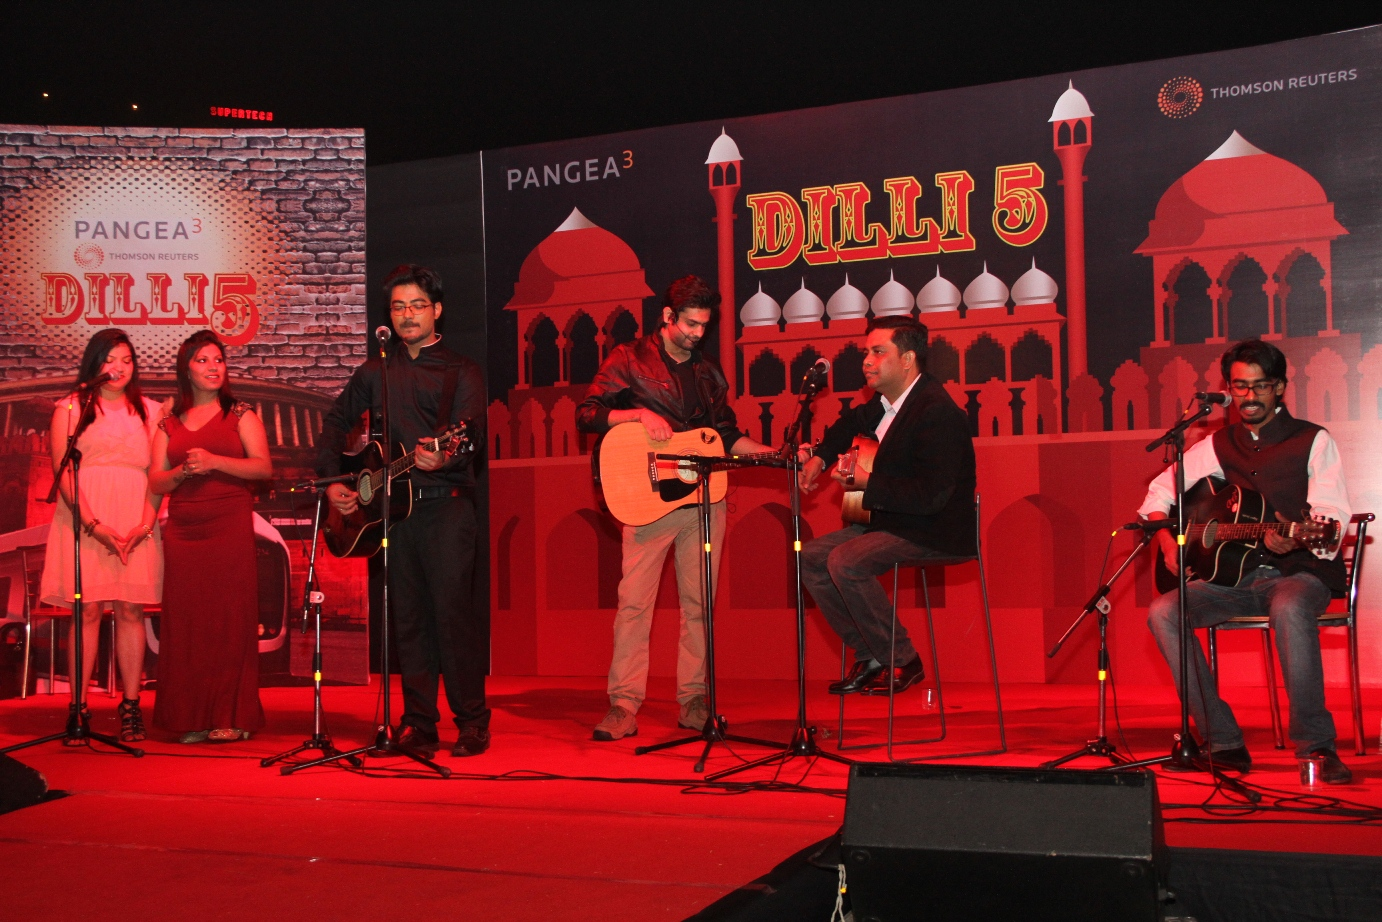 live band performing at an event